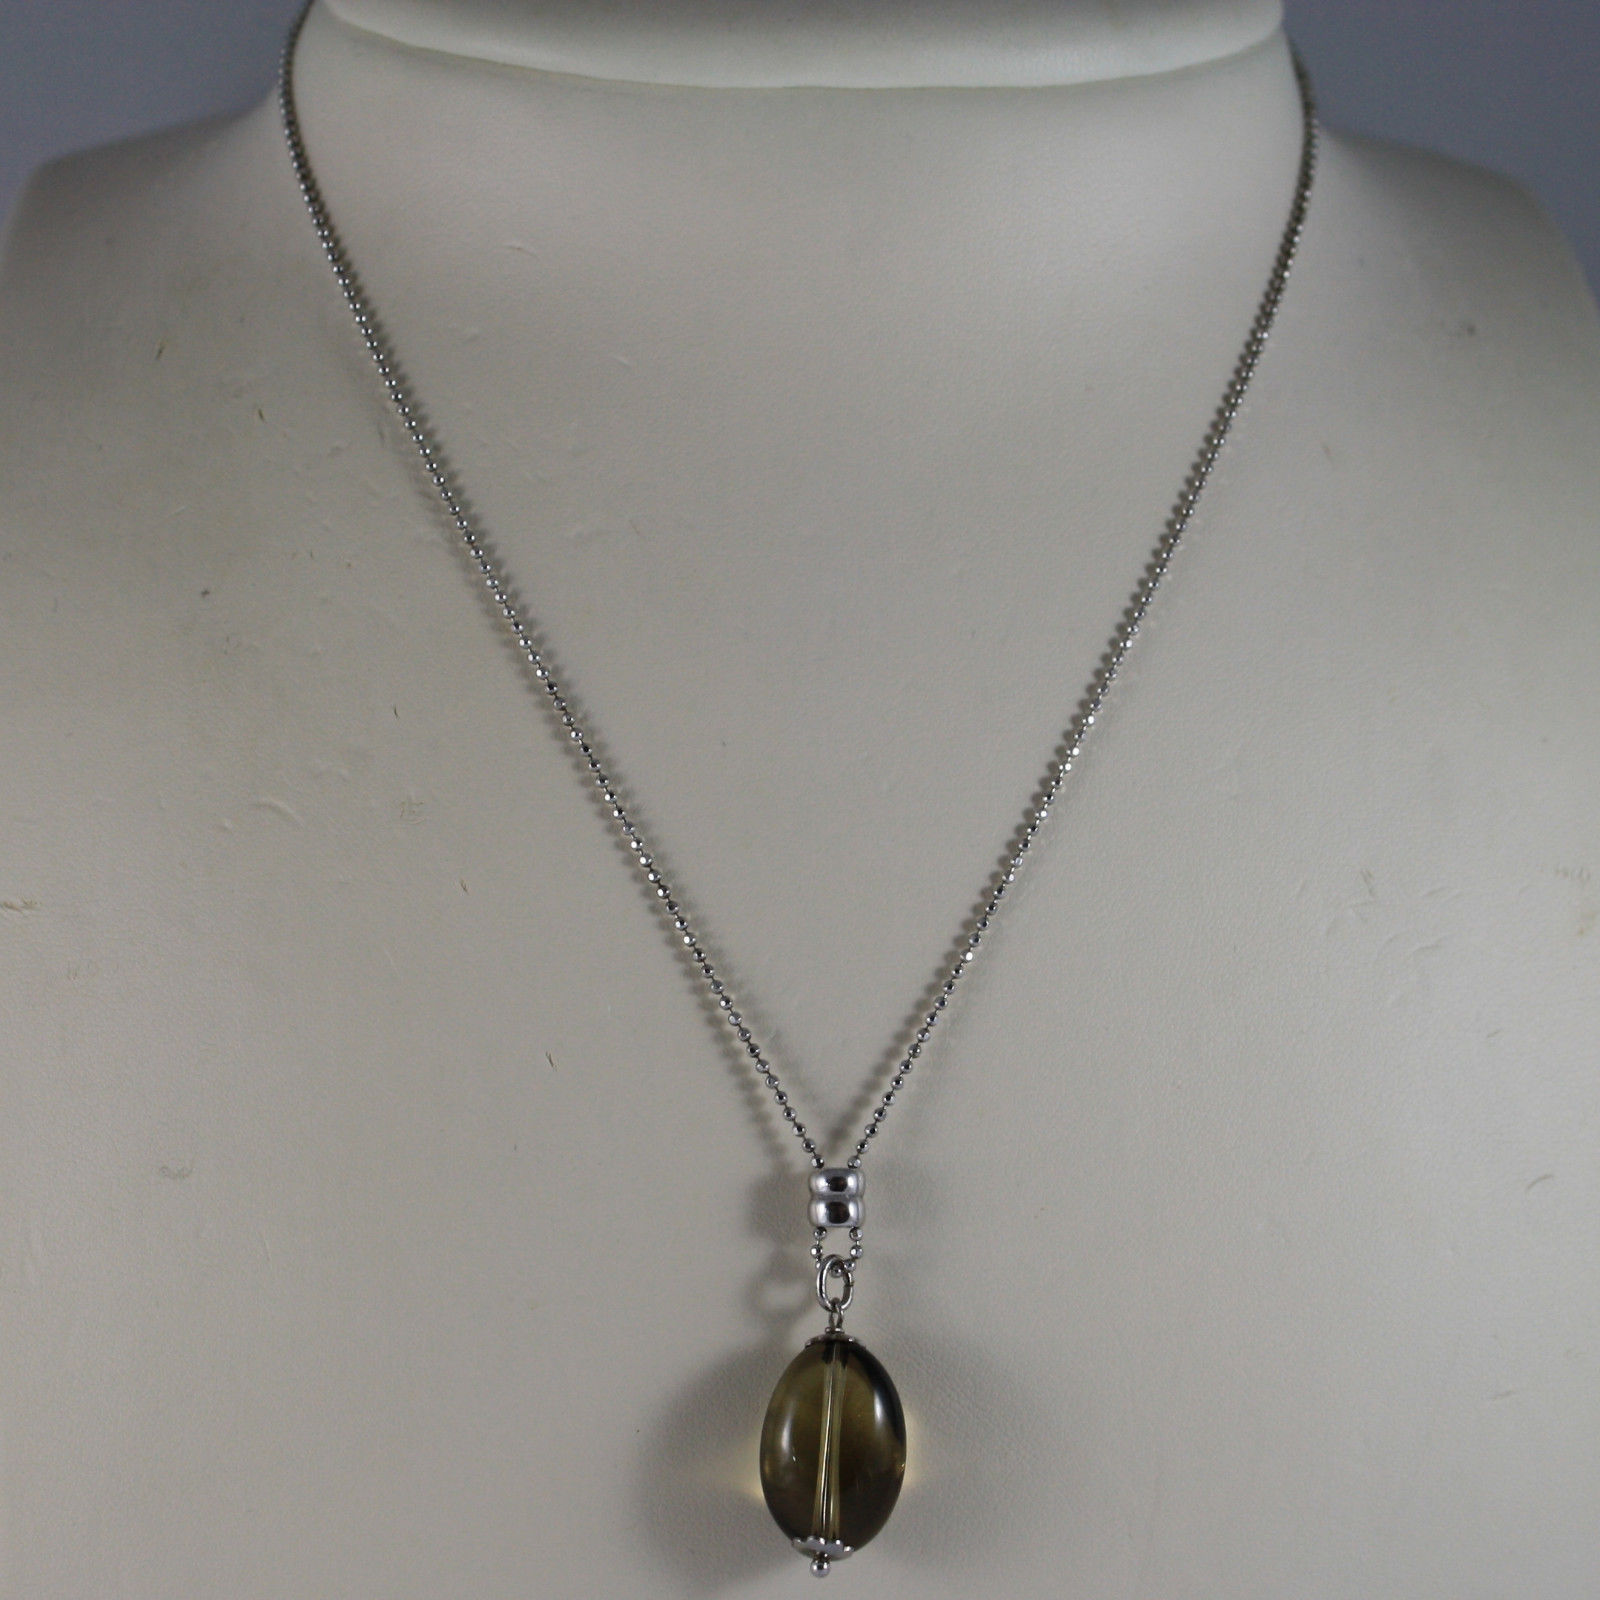 .925 RHODIUM SILVER NECKLACE WITH SMOKY QUARTZ